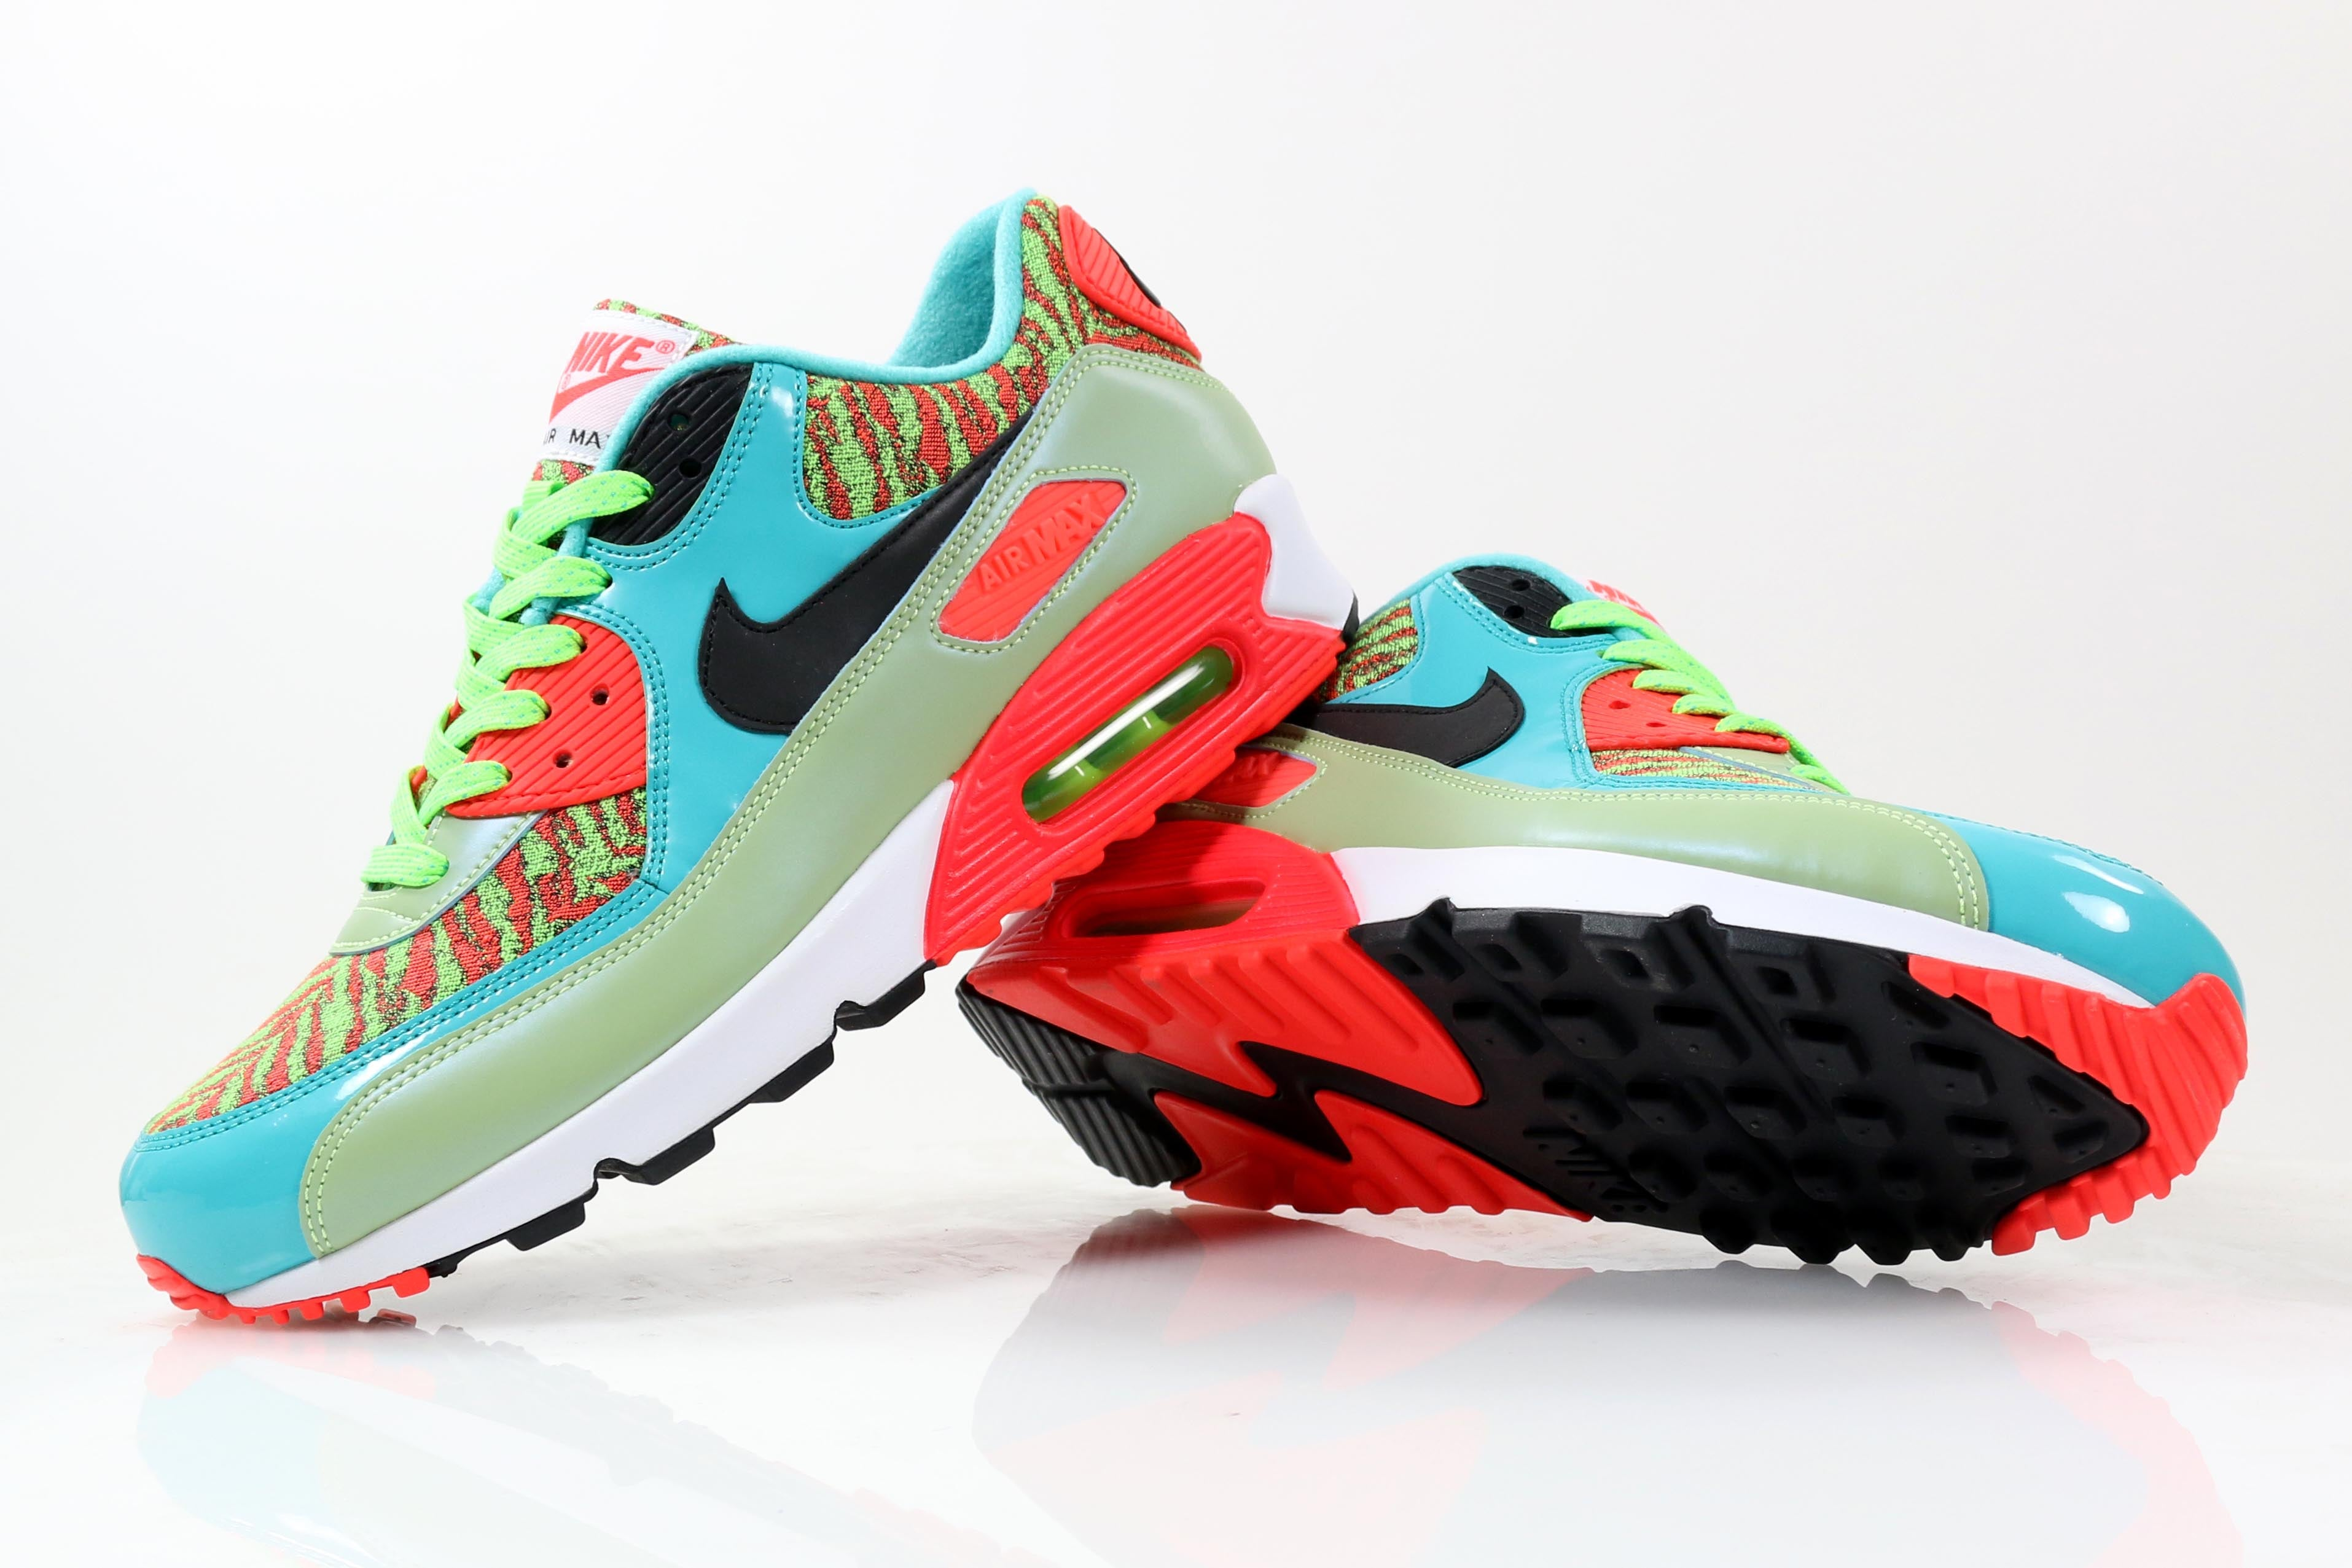 d86da81396f8 Nike continue to celebrate the 25th anniversary of the Air Max 90. This  edition features a vibrant blue and lime green upper with green and orange  tiger ...